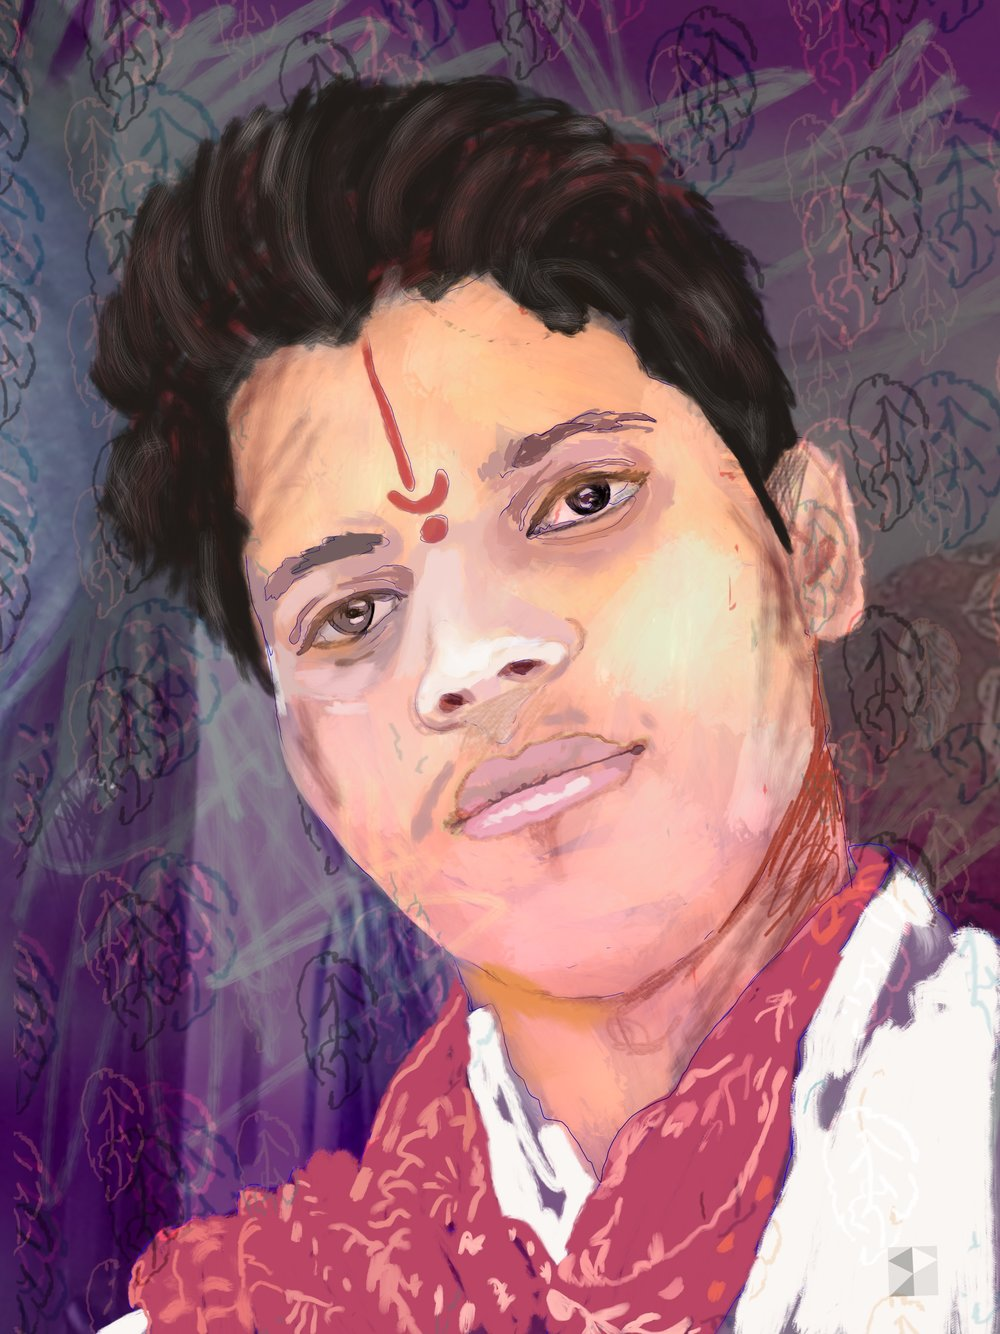 Rajasthan    FBSelfie, ProCreate, Apple Pencil, Photoshop, iPad, Desktop Digital Image Dimensions Variable © SP.2017